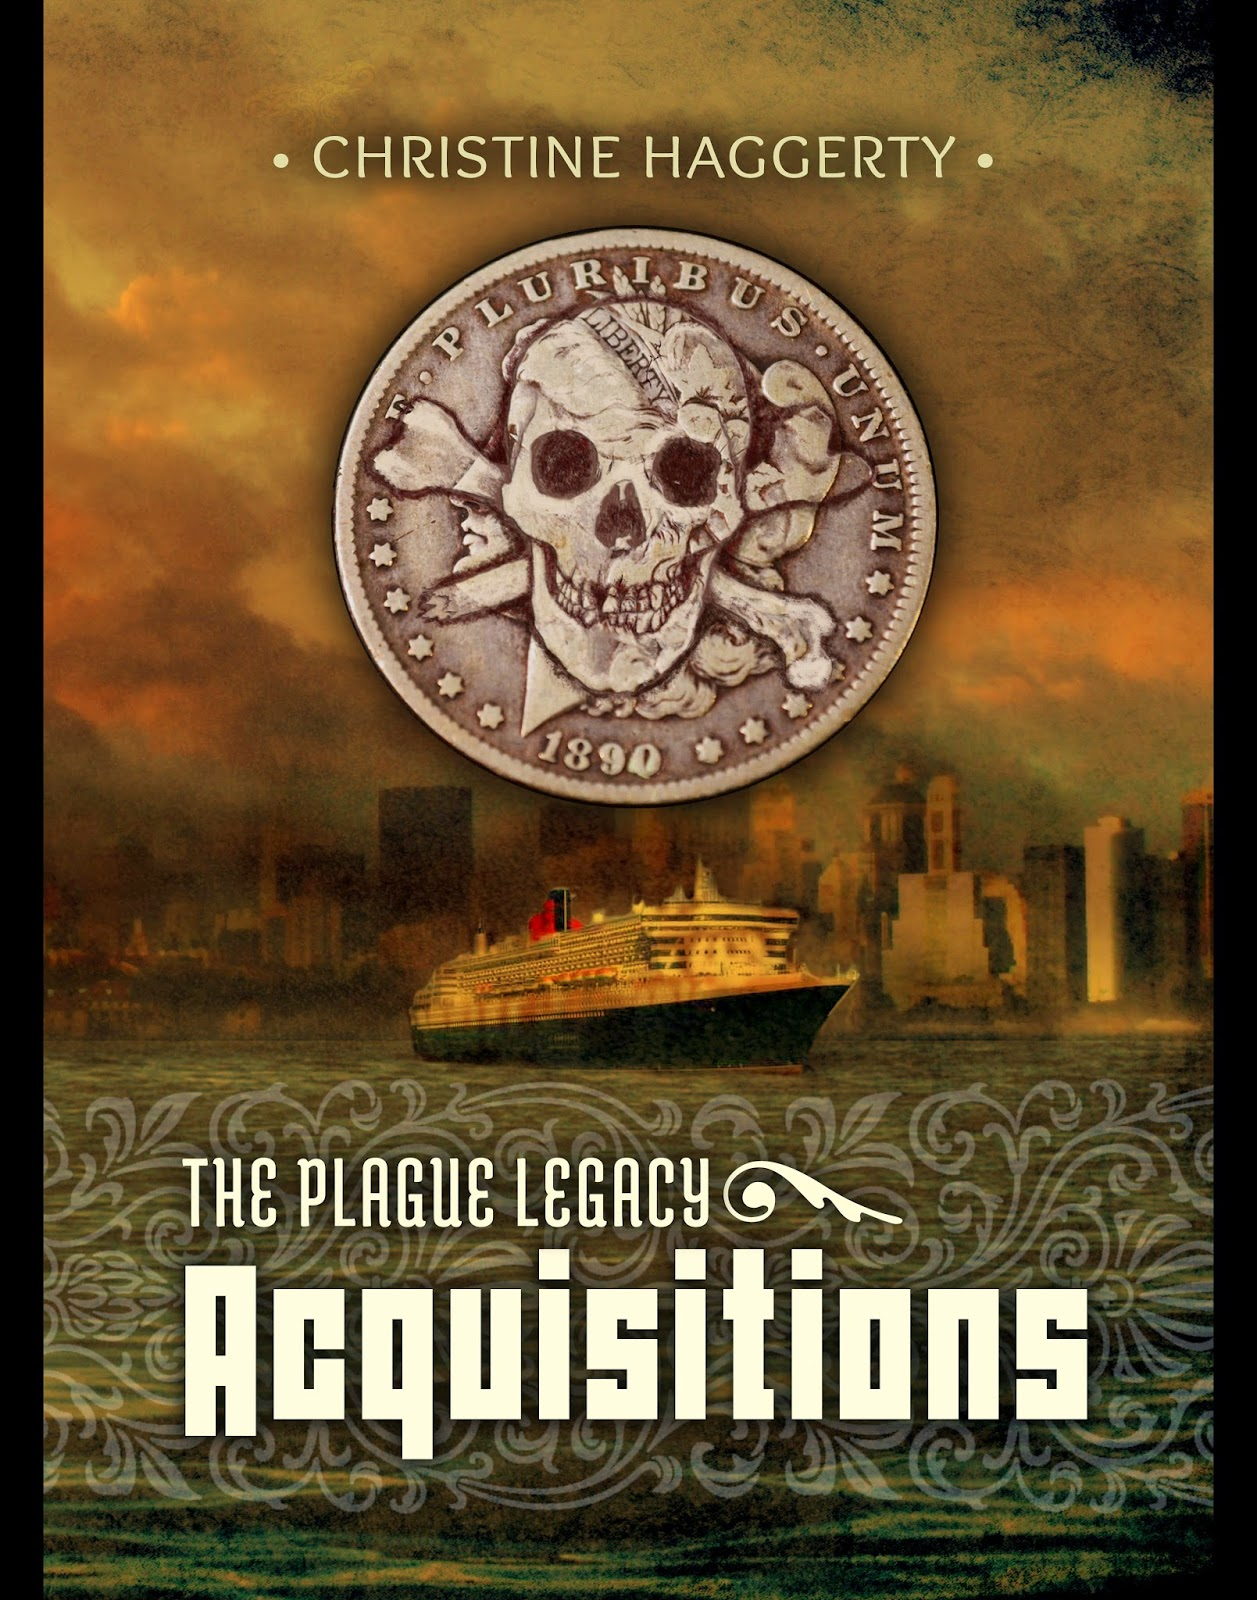 http://www.amazon.com/Acquisitions-Plague-Legacy-Book-1-ebook/dp/B00H15COZQ/ref=sr_1_1?ie=UTF8&qid=1412787590&sr=8-1&keywords=acquisitions%2C+haggerty